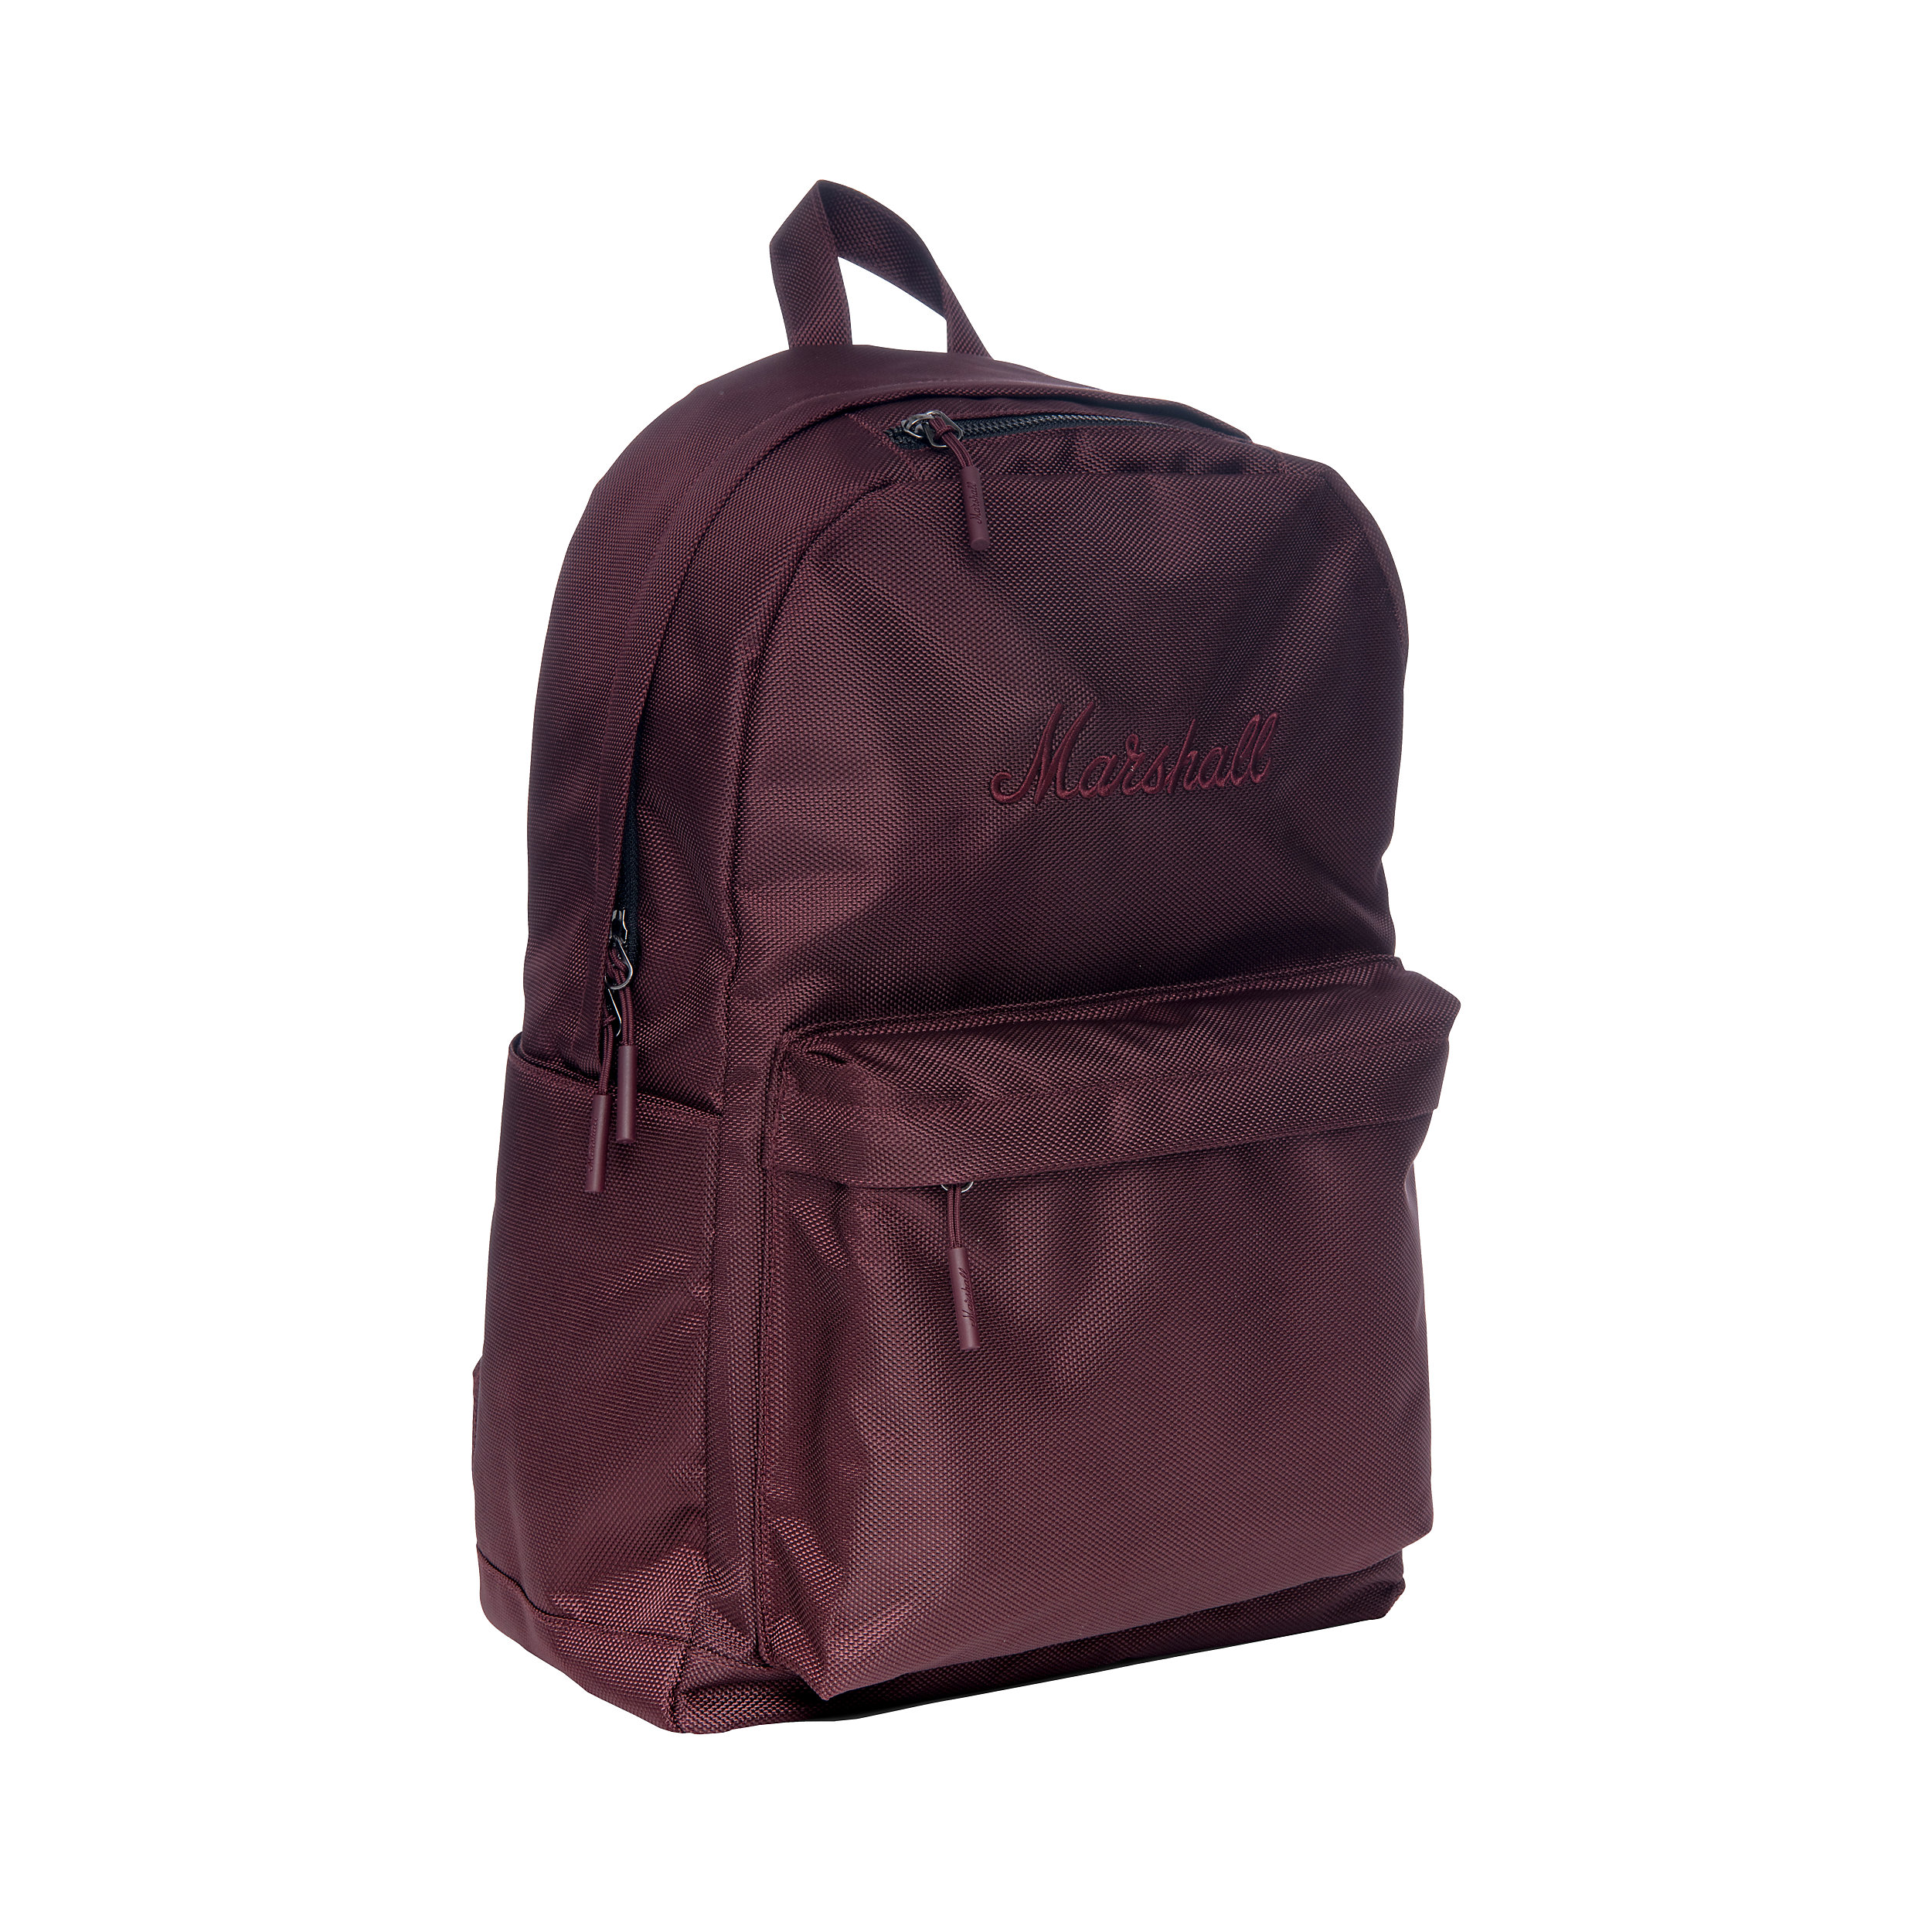 Backpack Crosstown 15 inch L 22 Liter